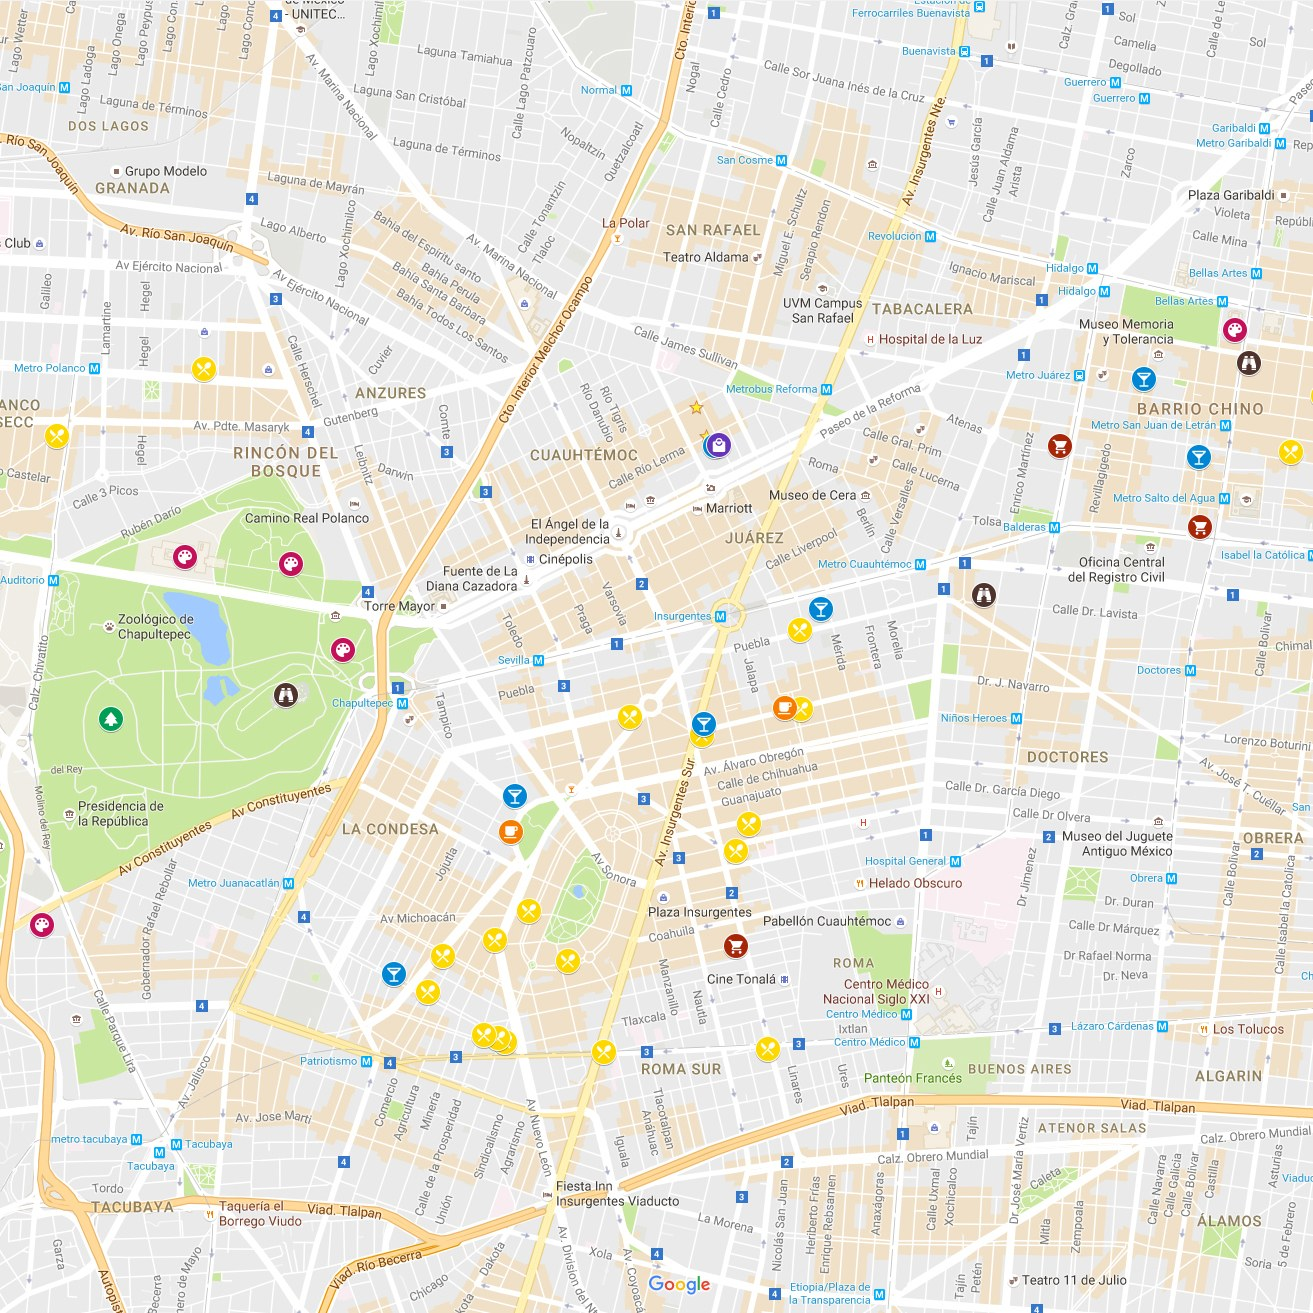 CoolBusinessIdeas.com | Google Map Now Tells You Offers From ... on google map university, bing maps places, directions to and from places, google places map99412poaha pl, google earth my-places,